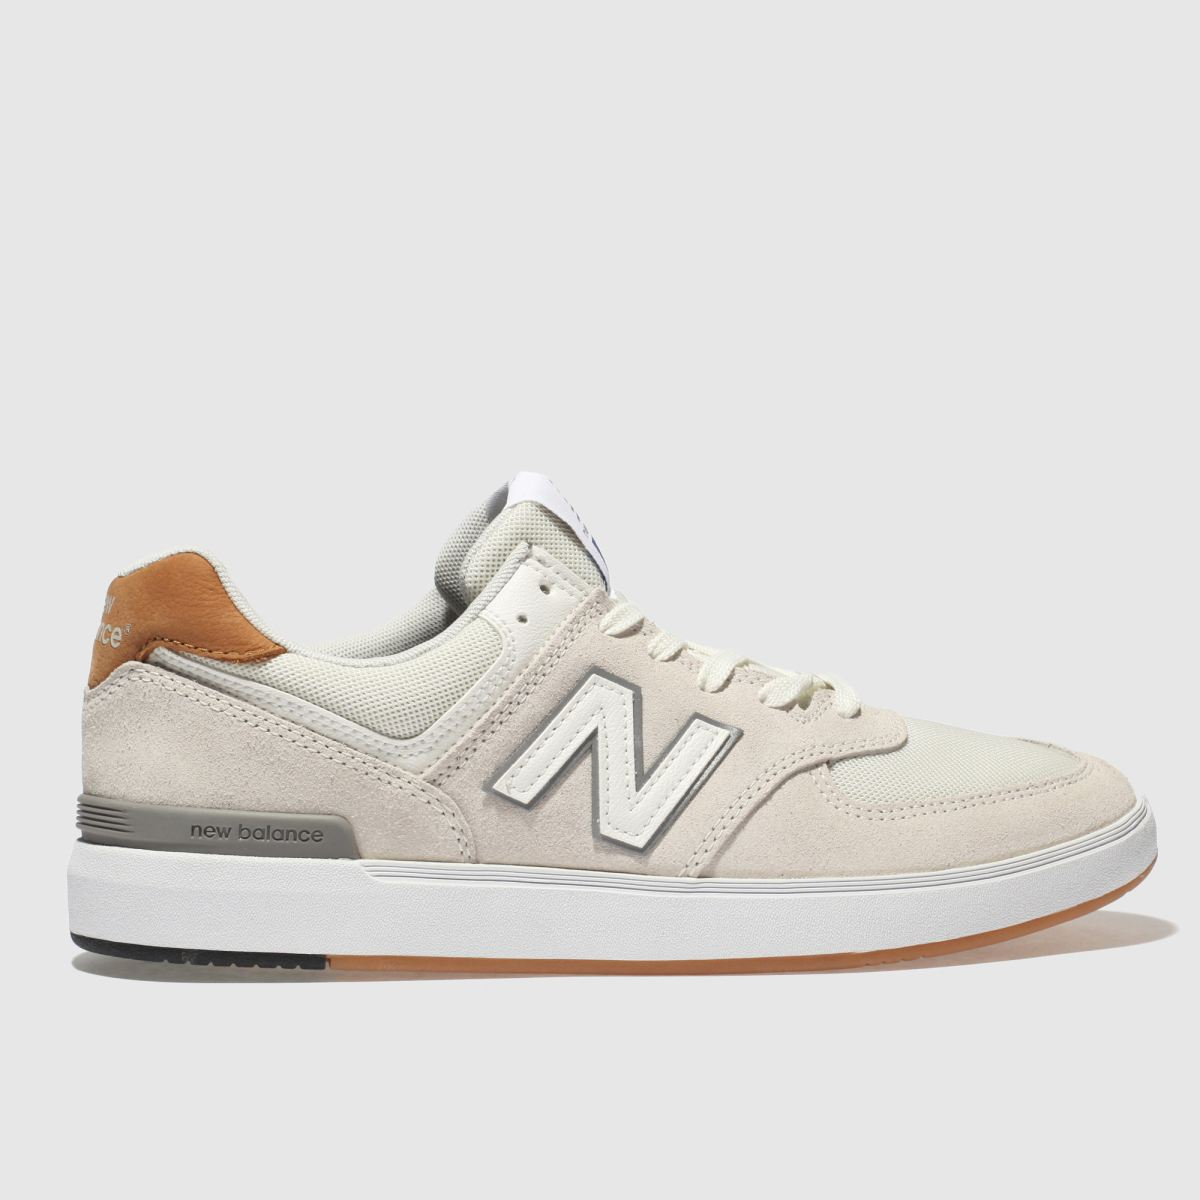 discount shop numerous in variety later New Balance Stone All Coasts 574 Trainers | £26.99 | Bluewater